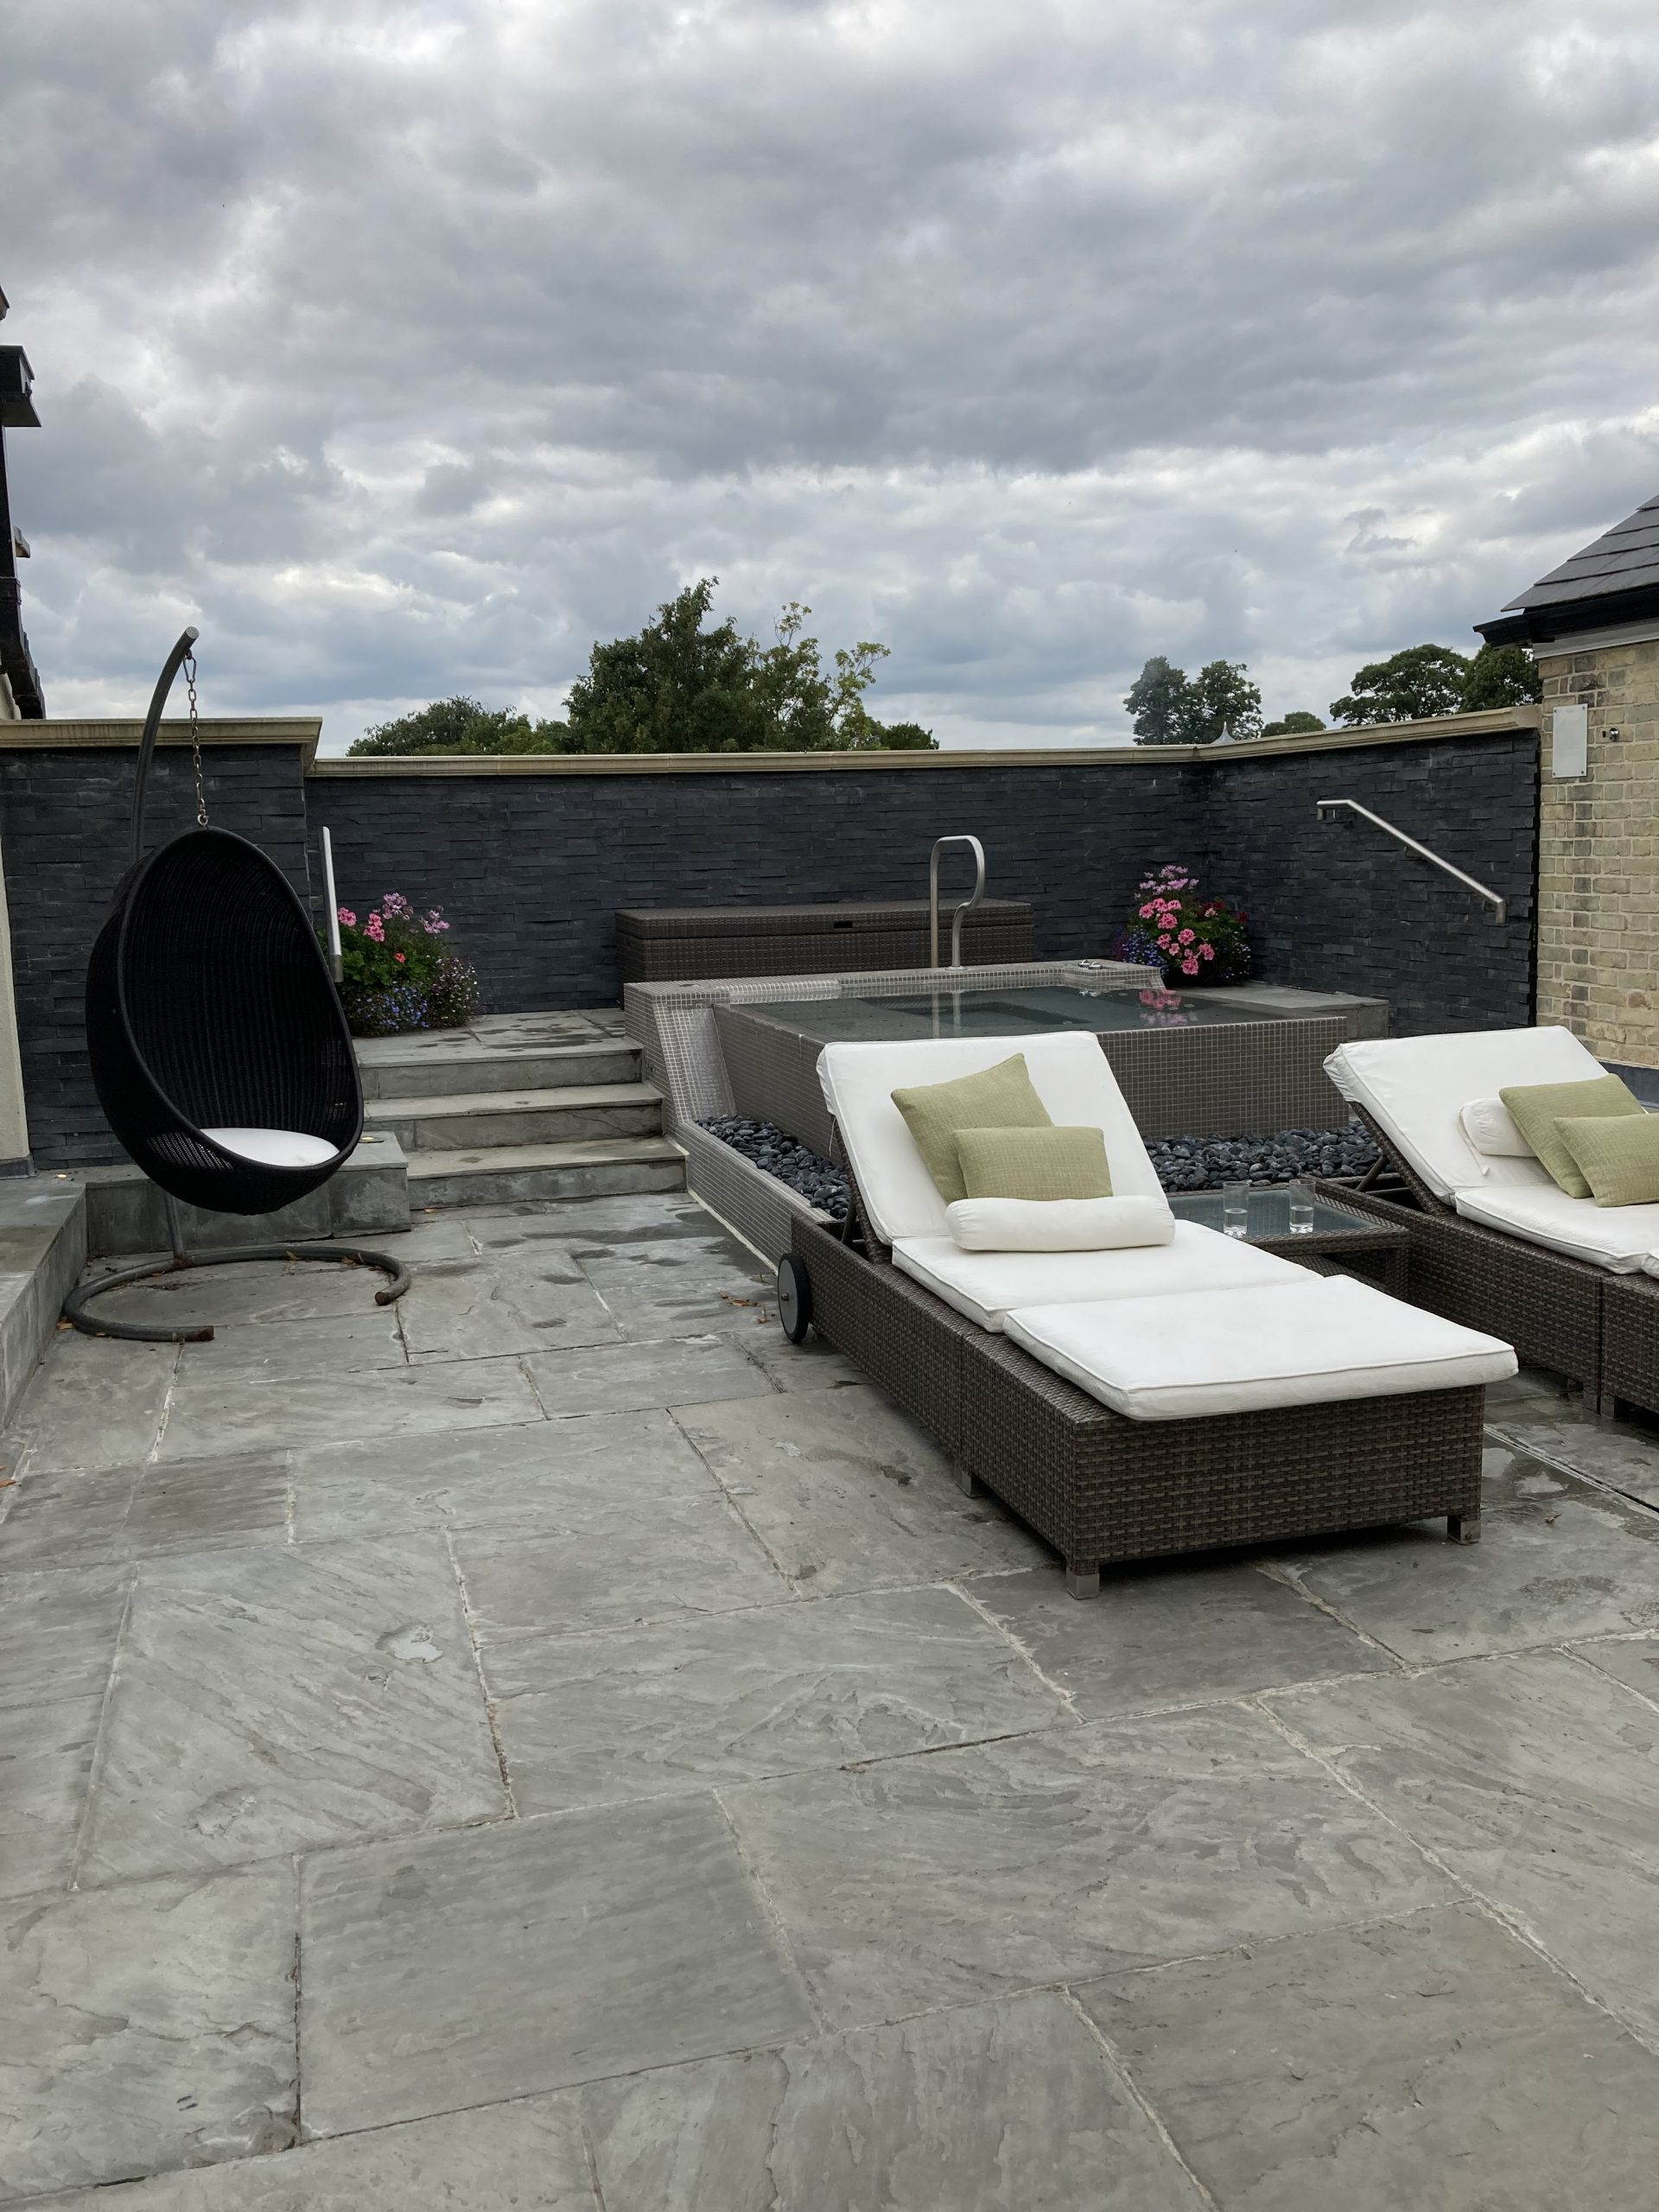 Bedford Lodge rooftop